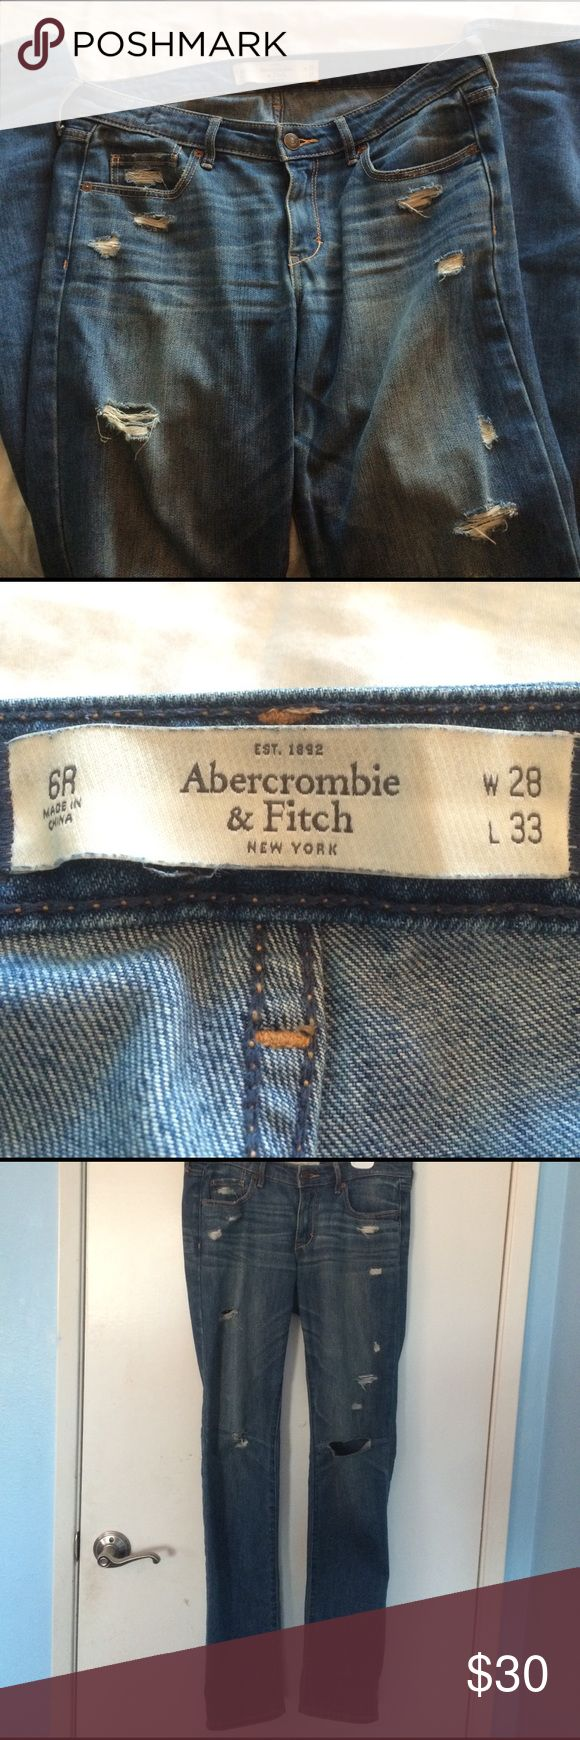 Abercrombie and Fitch skinny distressed jeans These jeans look great with the hems at the bottom folded up because the calves of the jeans are looser than the top Abercrombie & Fitch Jeans Skinny